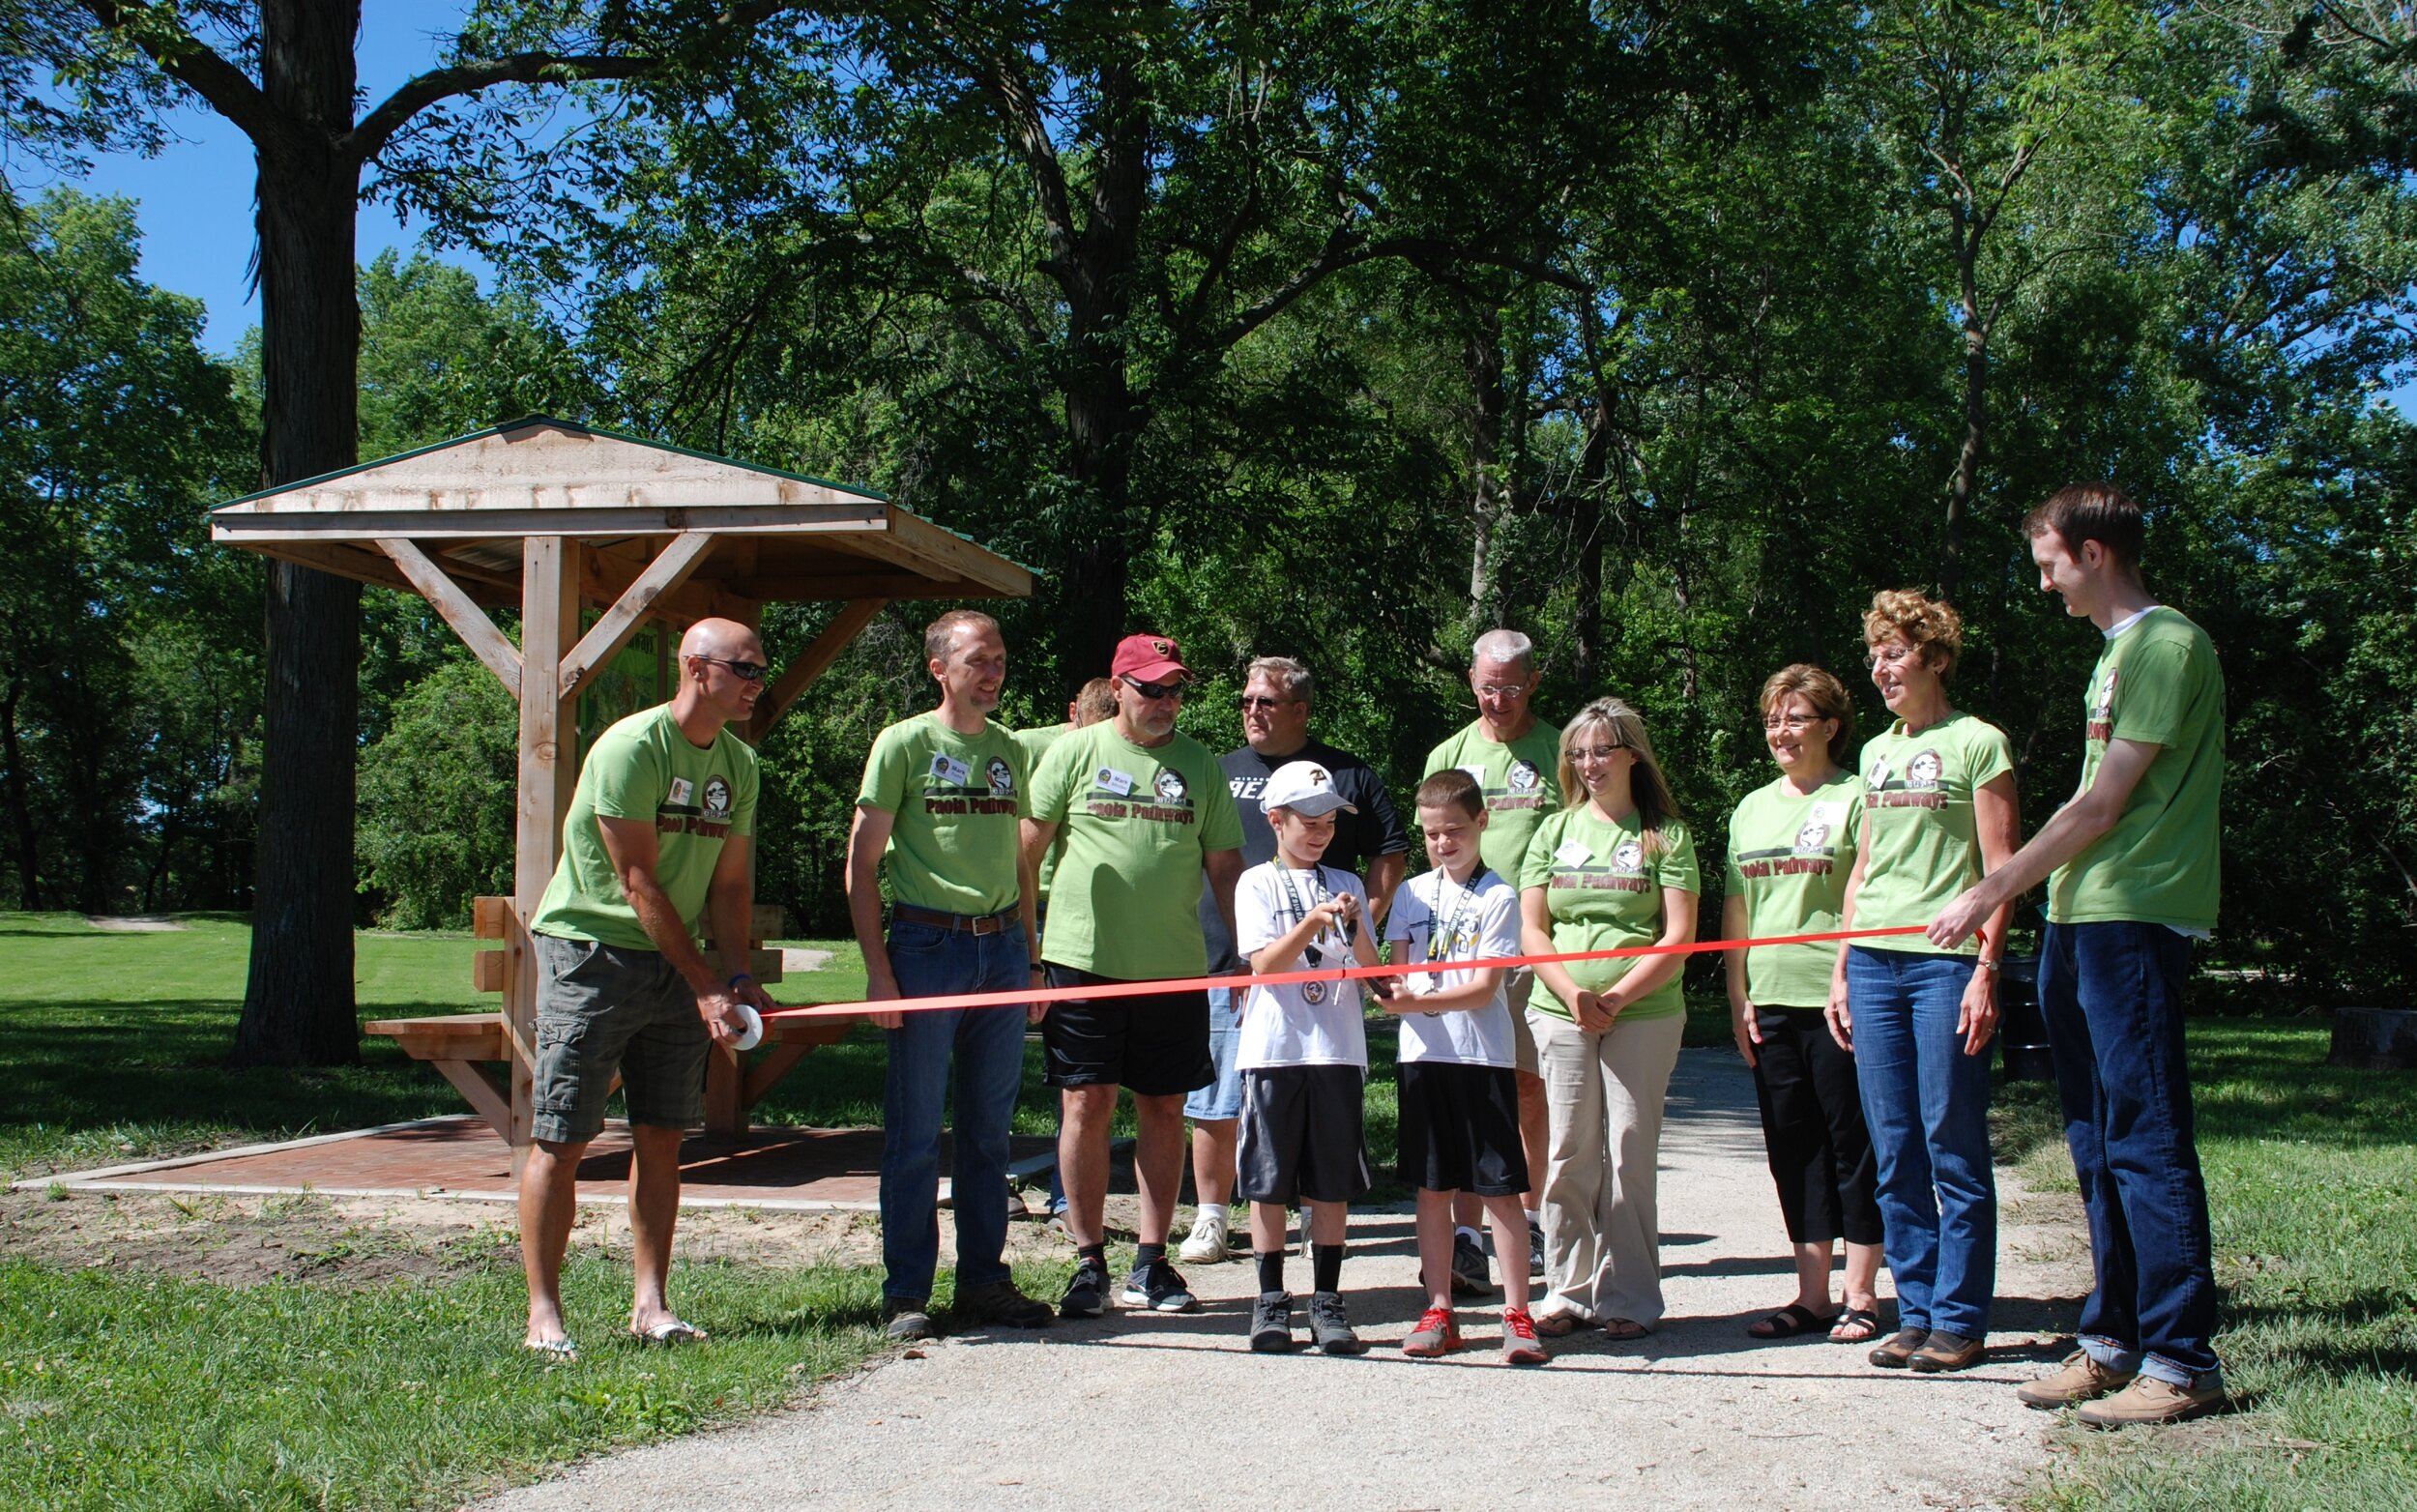 June 13, 2014-Ribbon cutting ceremony opening inaugural trails of Paola Pathway